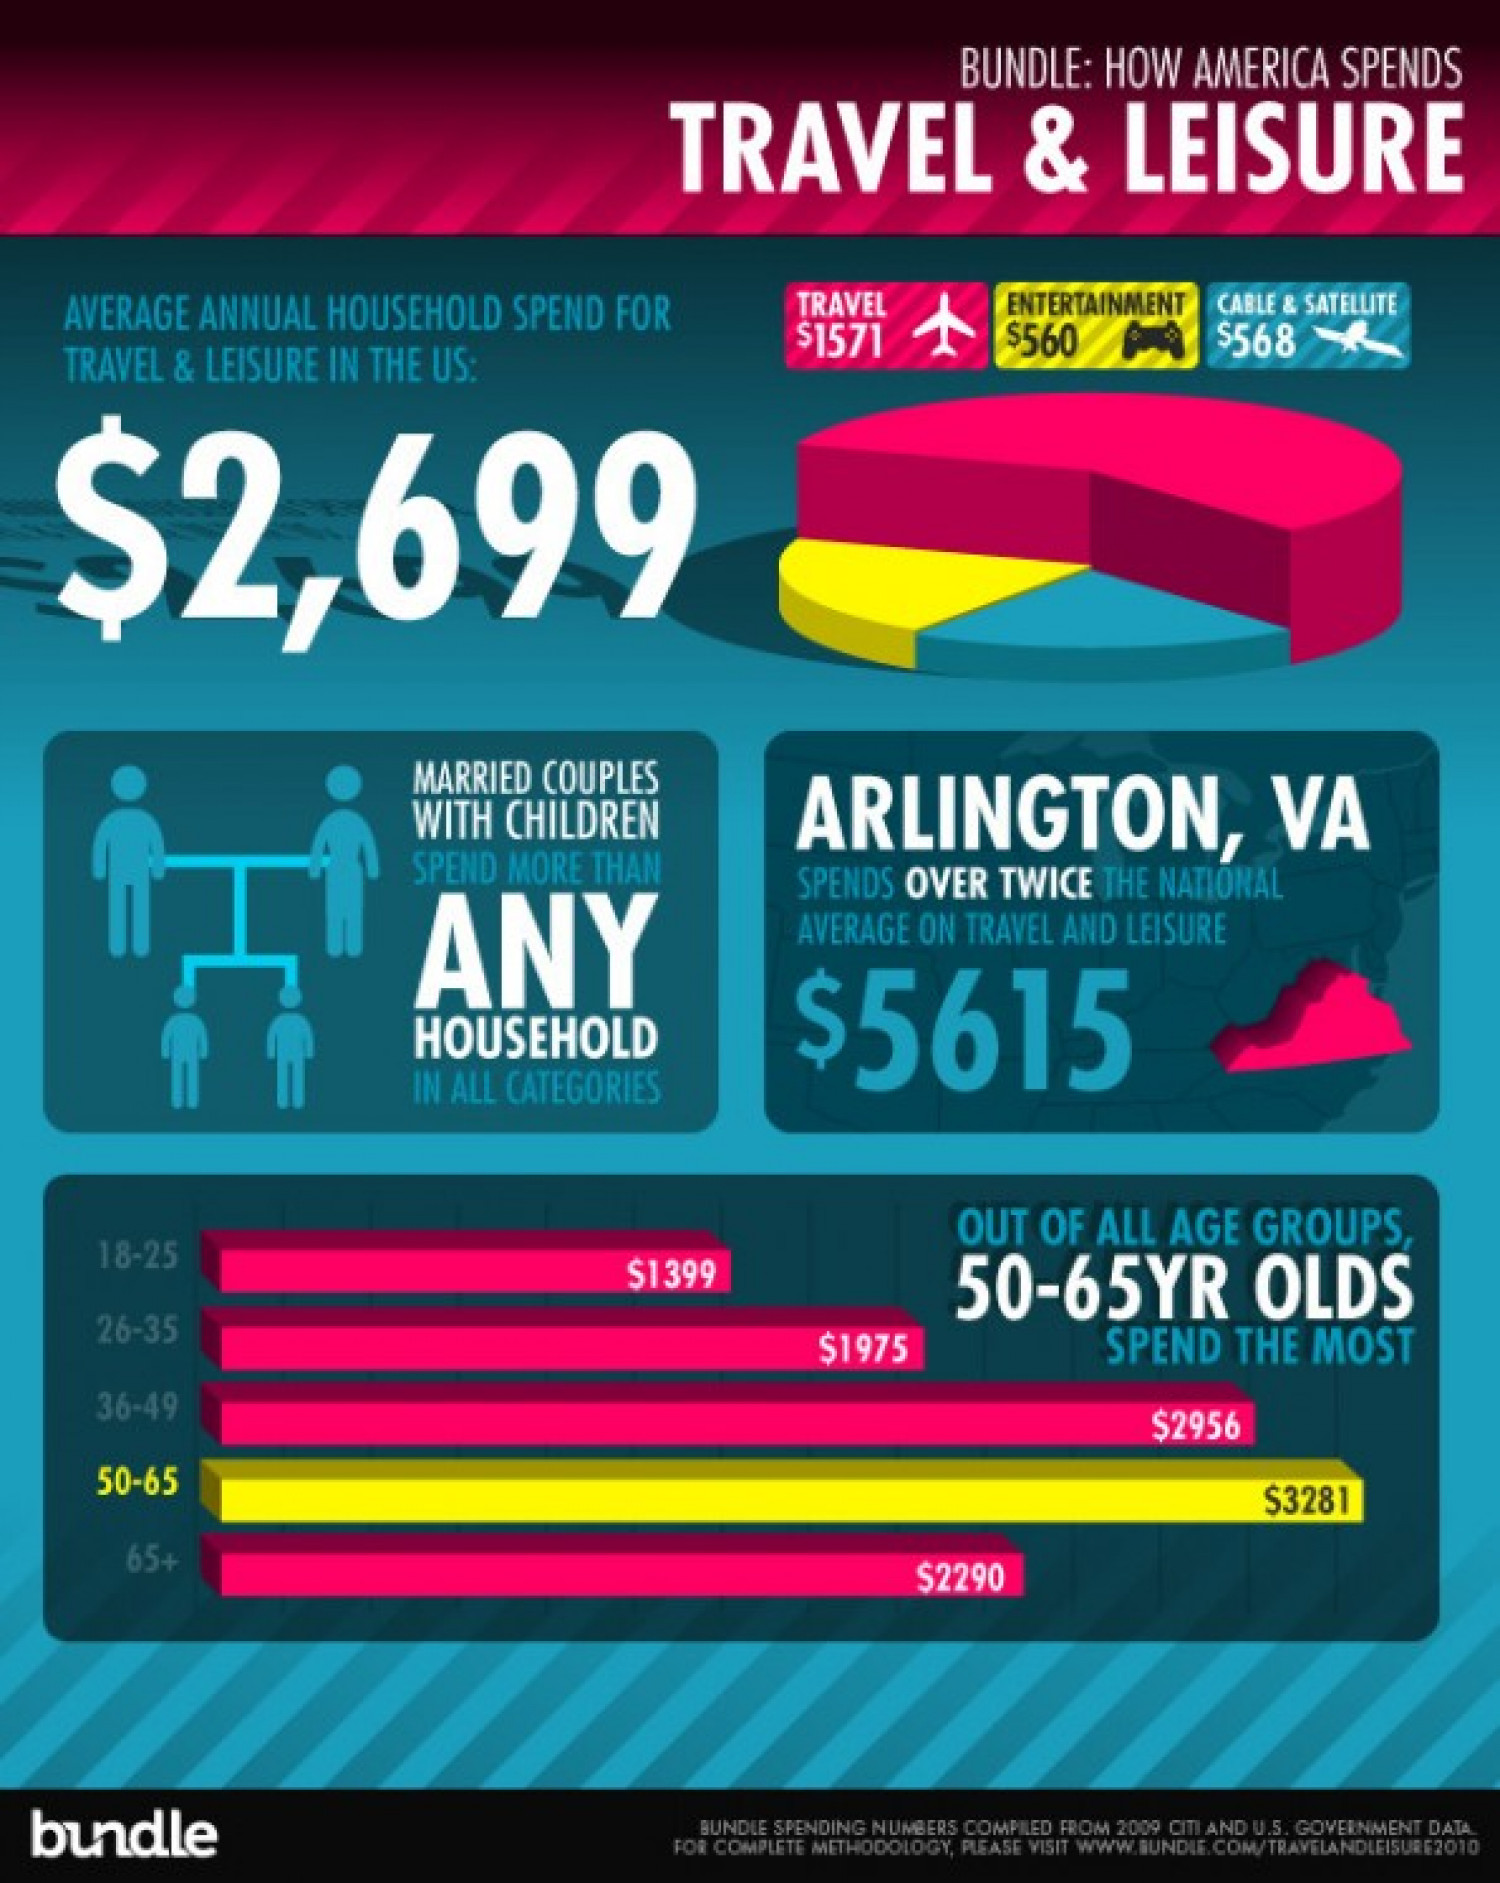 How America Spends Travel & Leisure Infographic